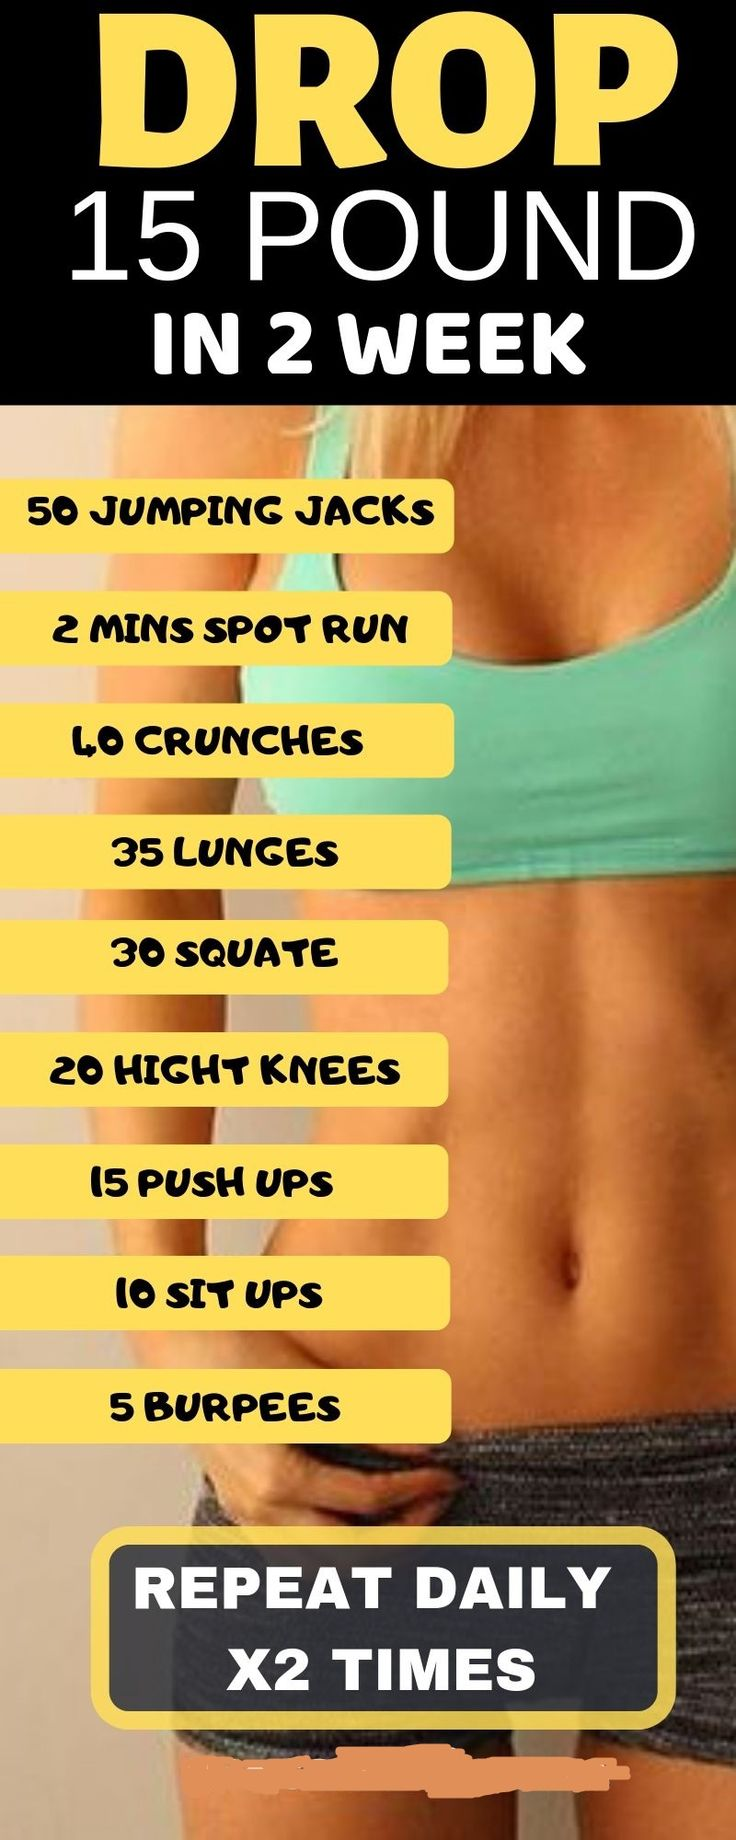 How to lose 7-10 Pounds in a Week – Weight loss